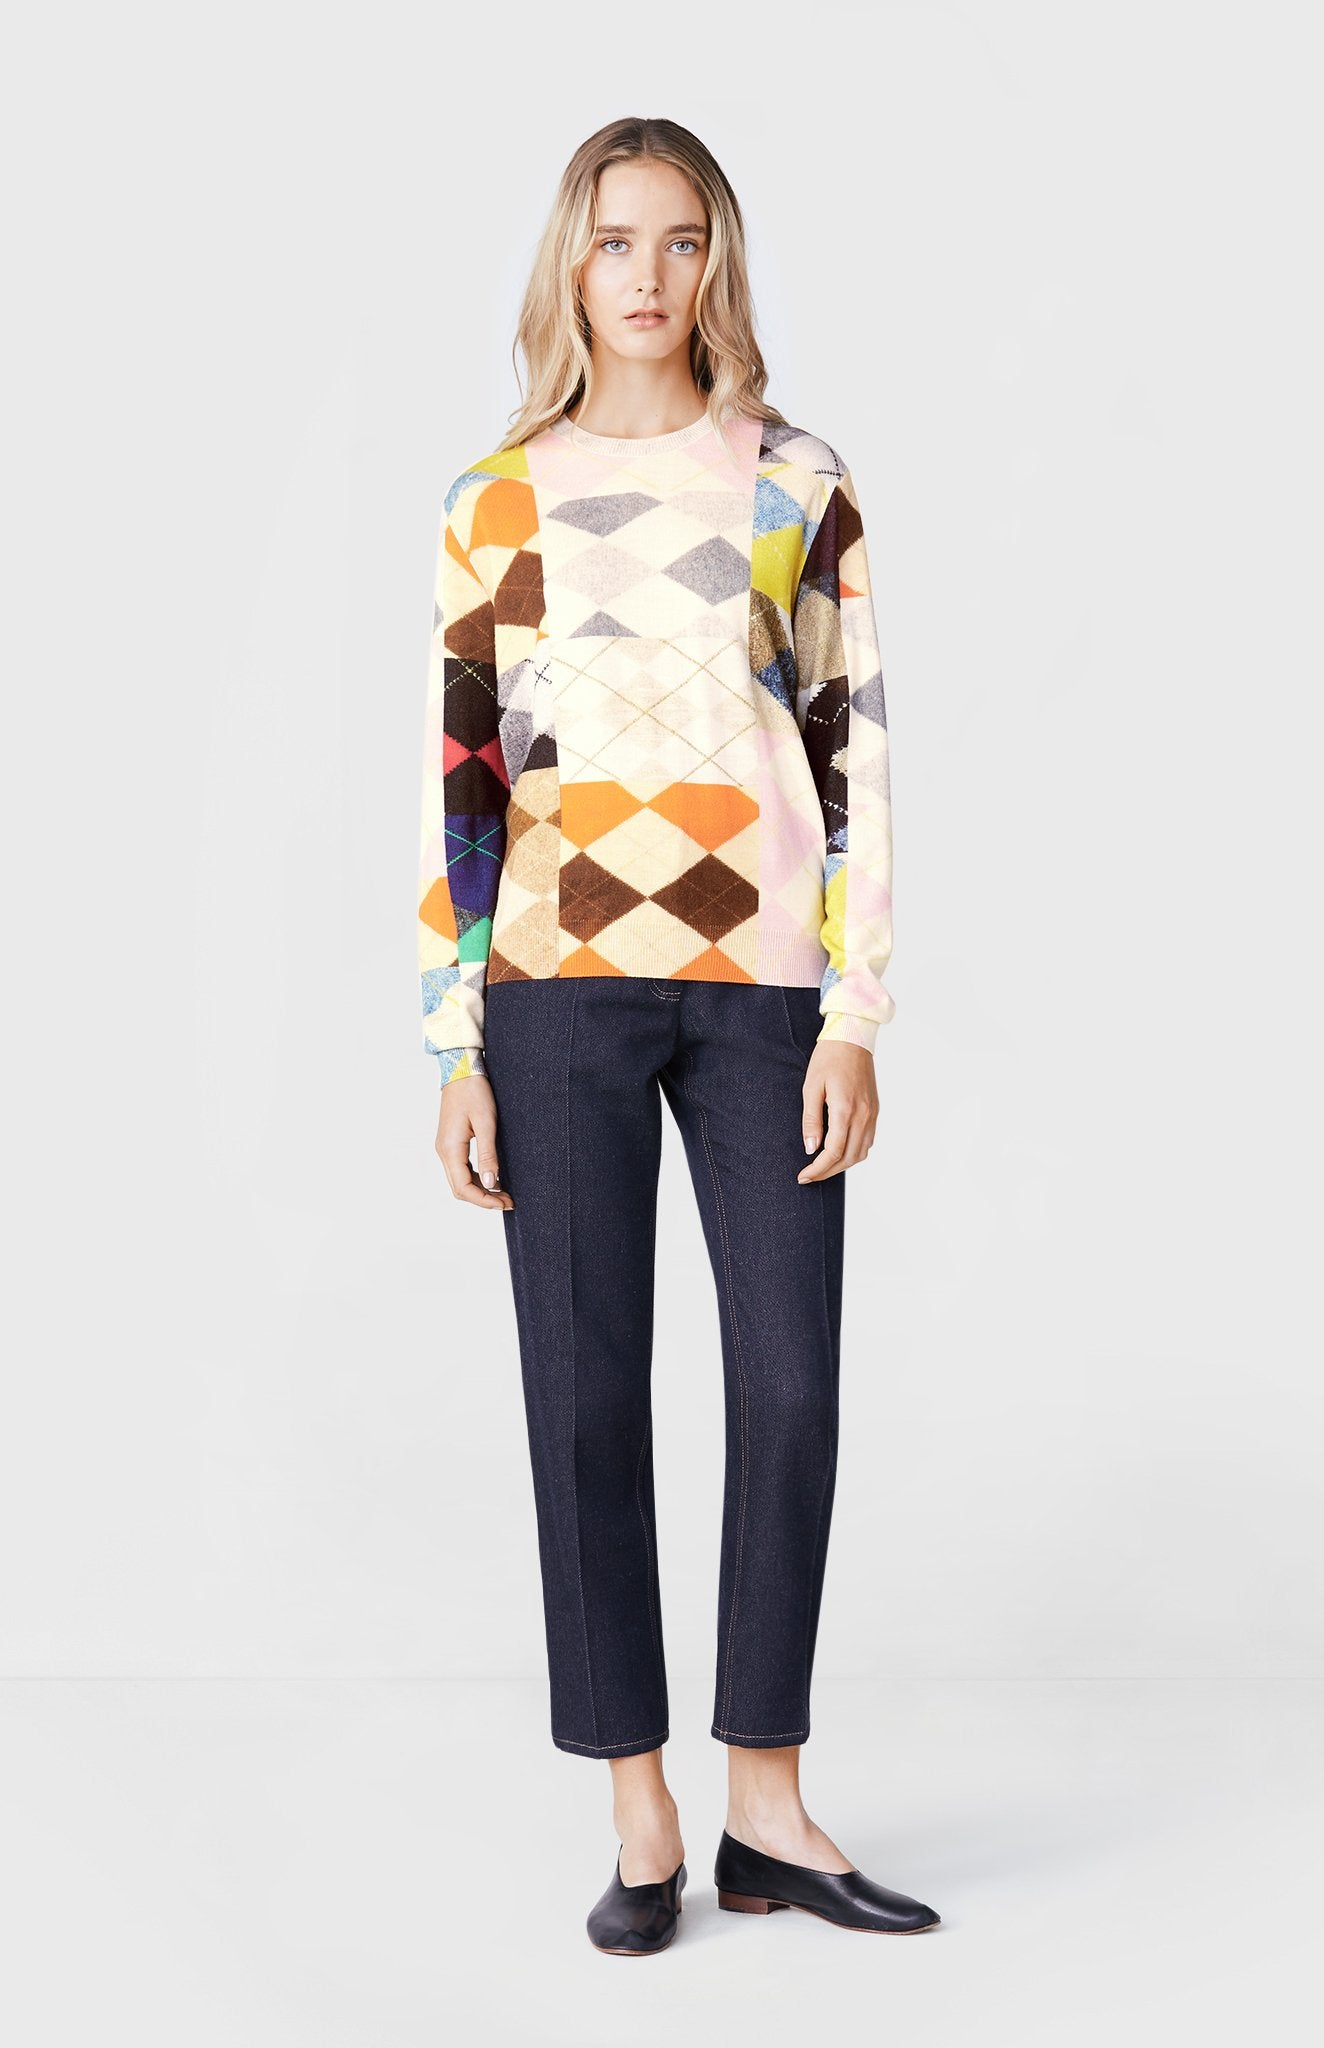 Pringle of Scotland x Lucy Orta Patchwork Argyle Jumper